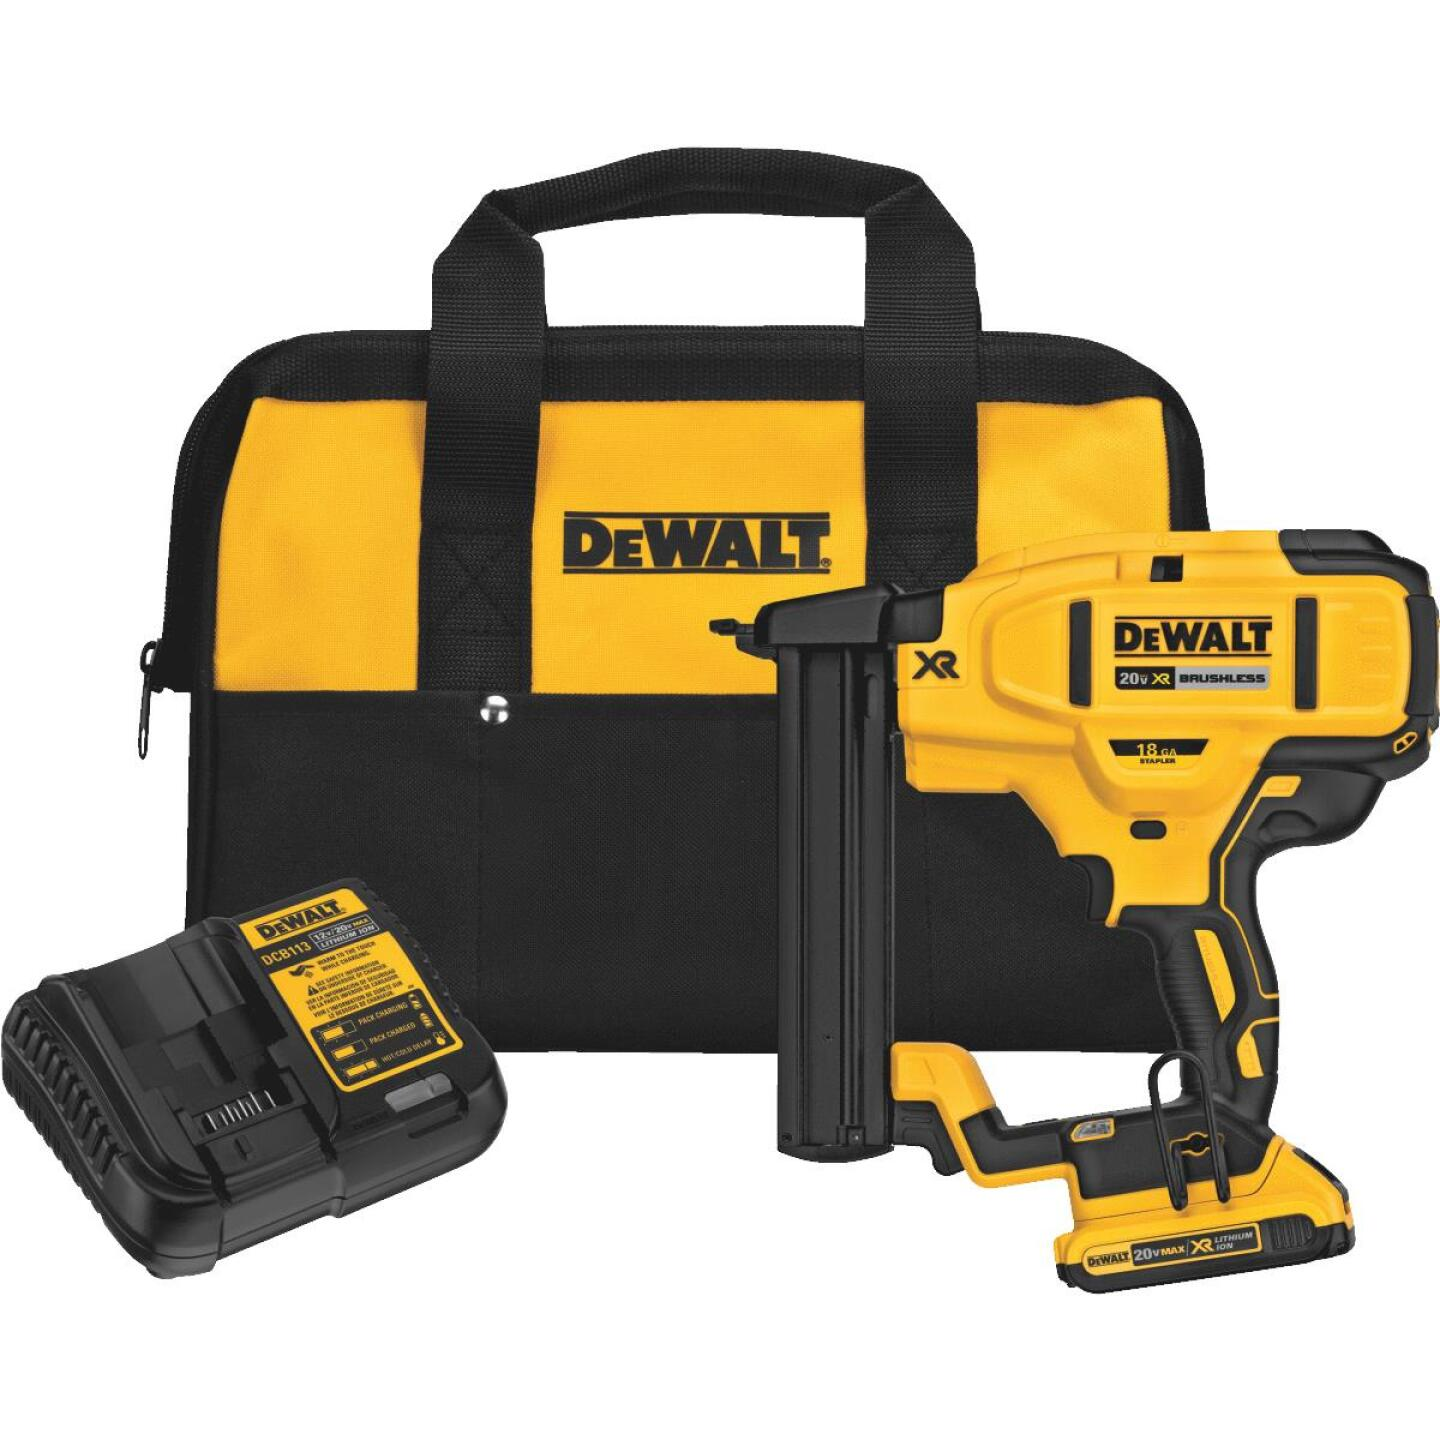 DeWalt 20 Volt MAX XR Lithium-Ion Brushless 18-Gauge 1/4 In. Crown Cordless Finish Stapler Kit Image 1